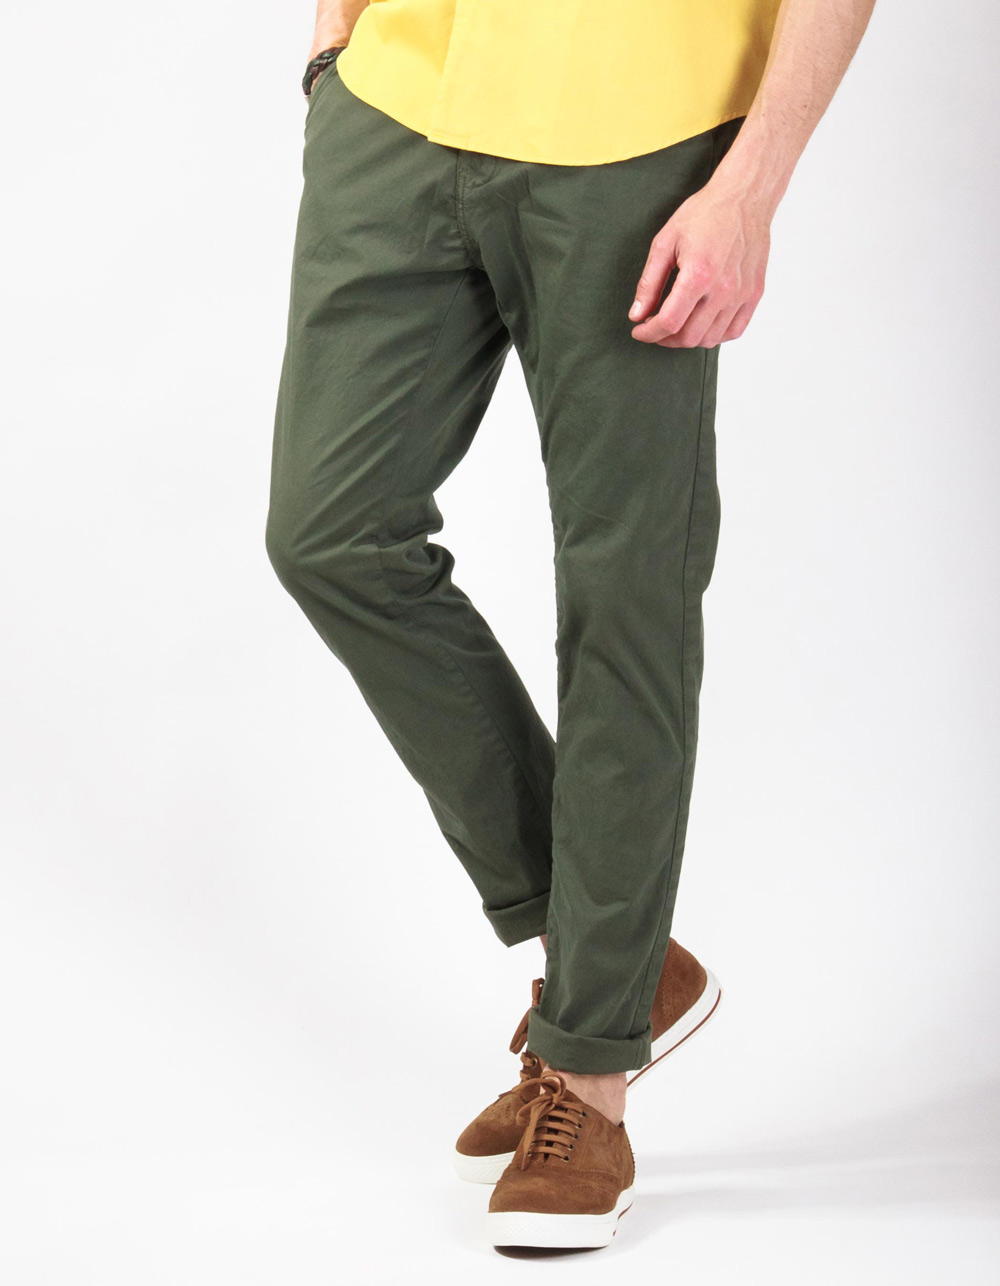 Kaki chinos trousers